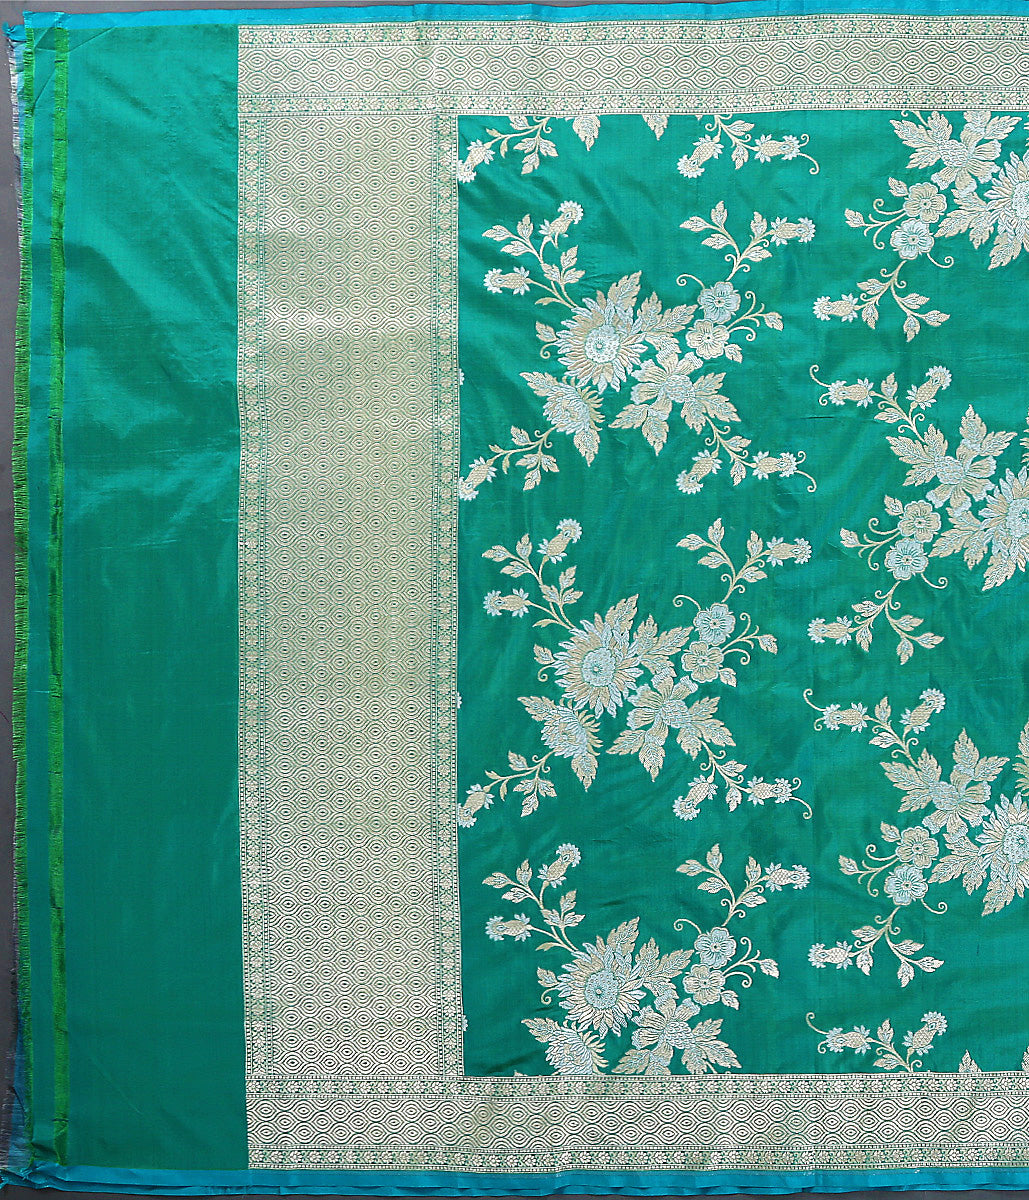 Aqua Green Katan Silk Dupatta with Gold and Silver Jaal